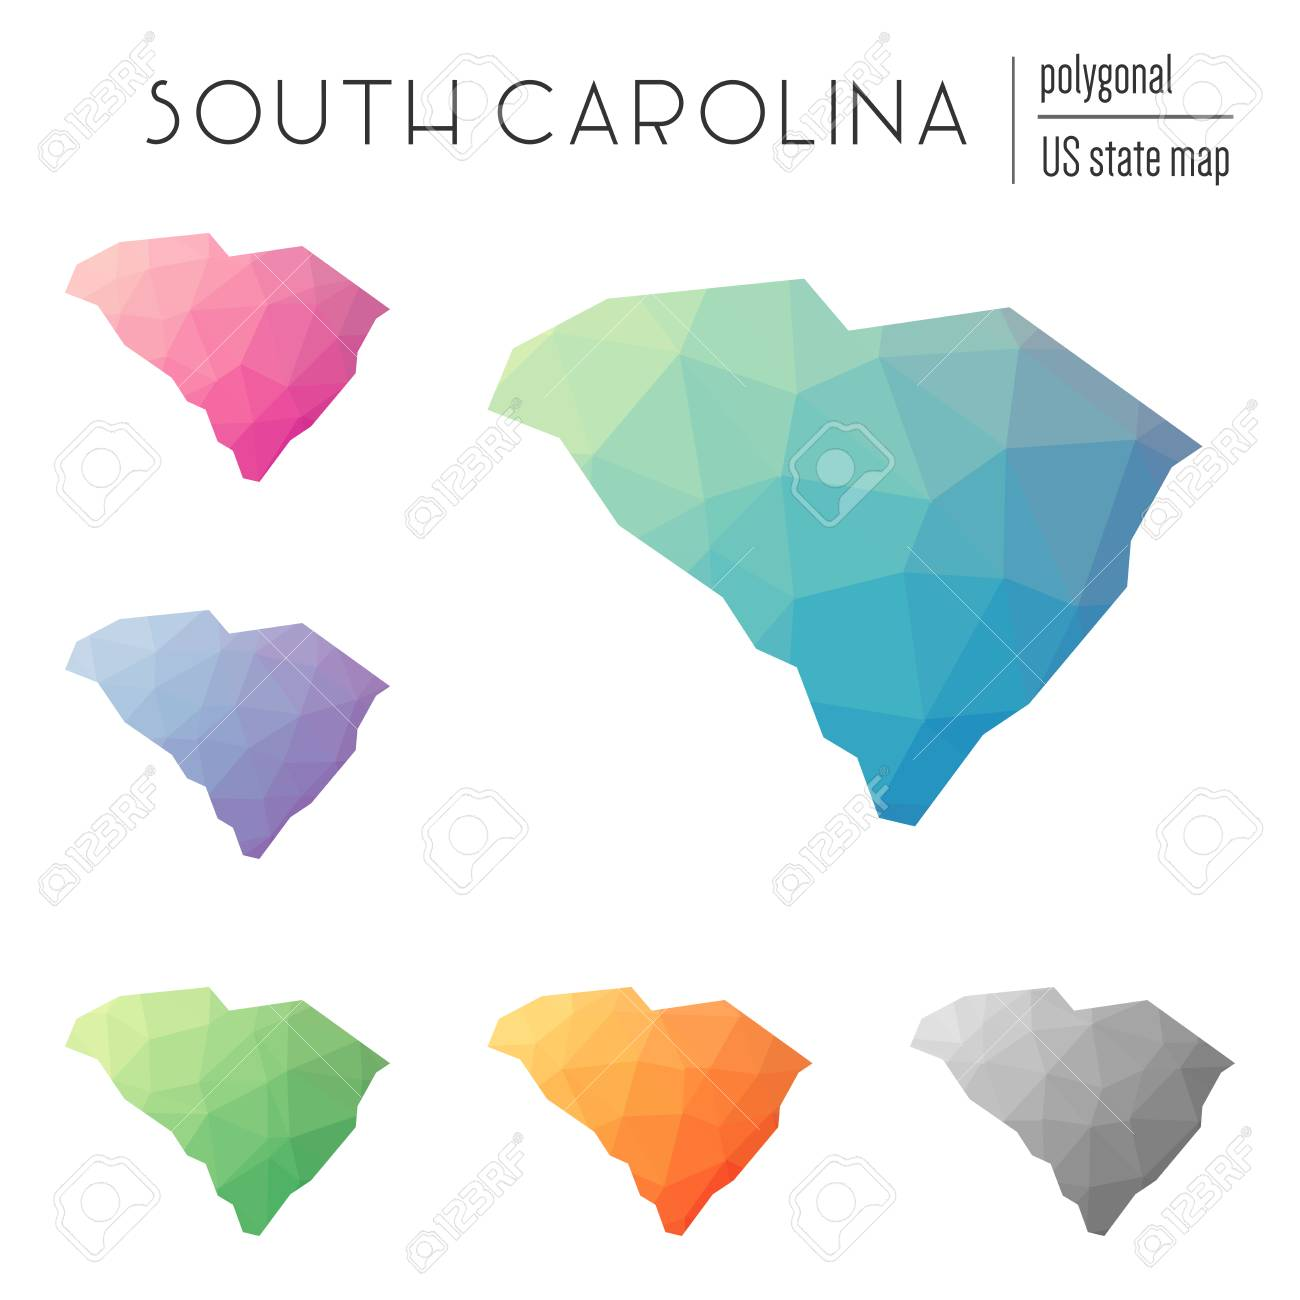 Set Of Vector Polygonal South Carolina Maps Bright Gradient